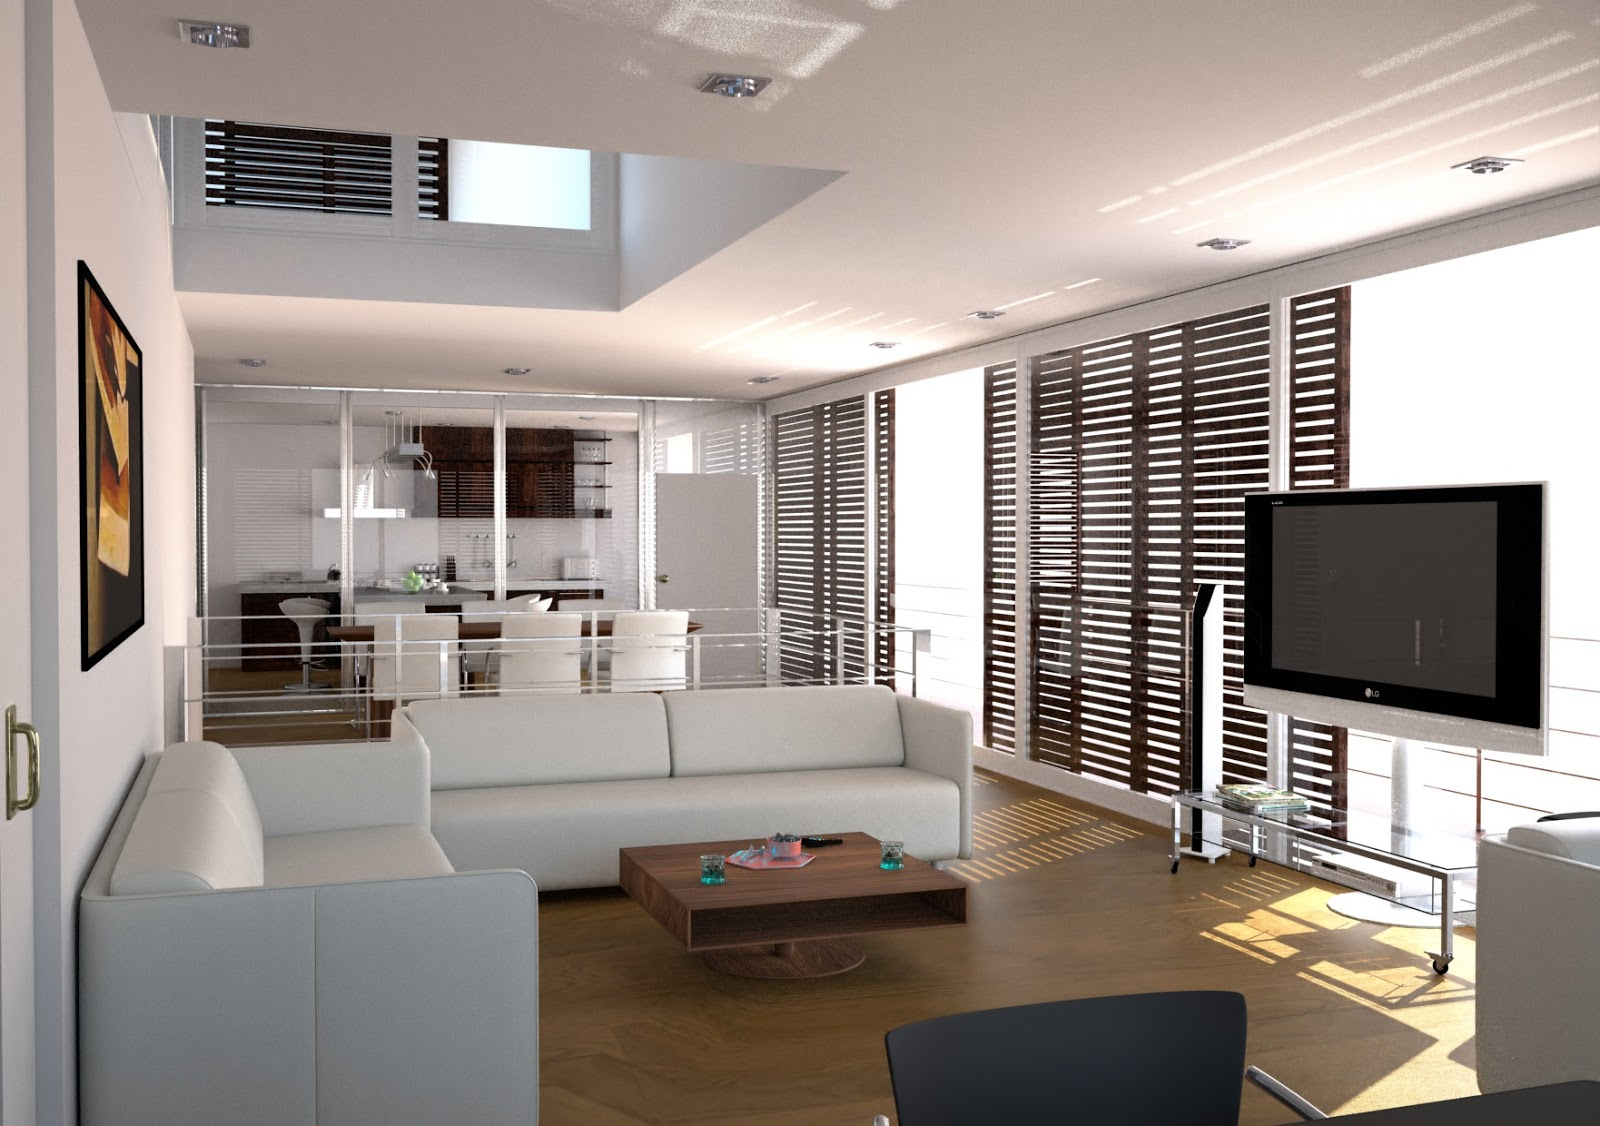 Use Modern Interior Design for Living Room with White Sofas and Stylish Oak Coffee Table on Hardwood Flooring